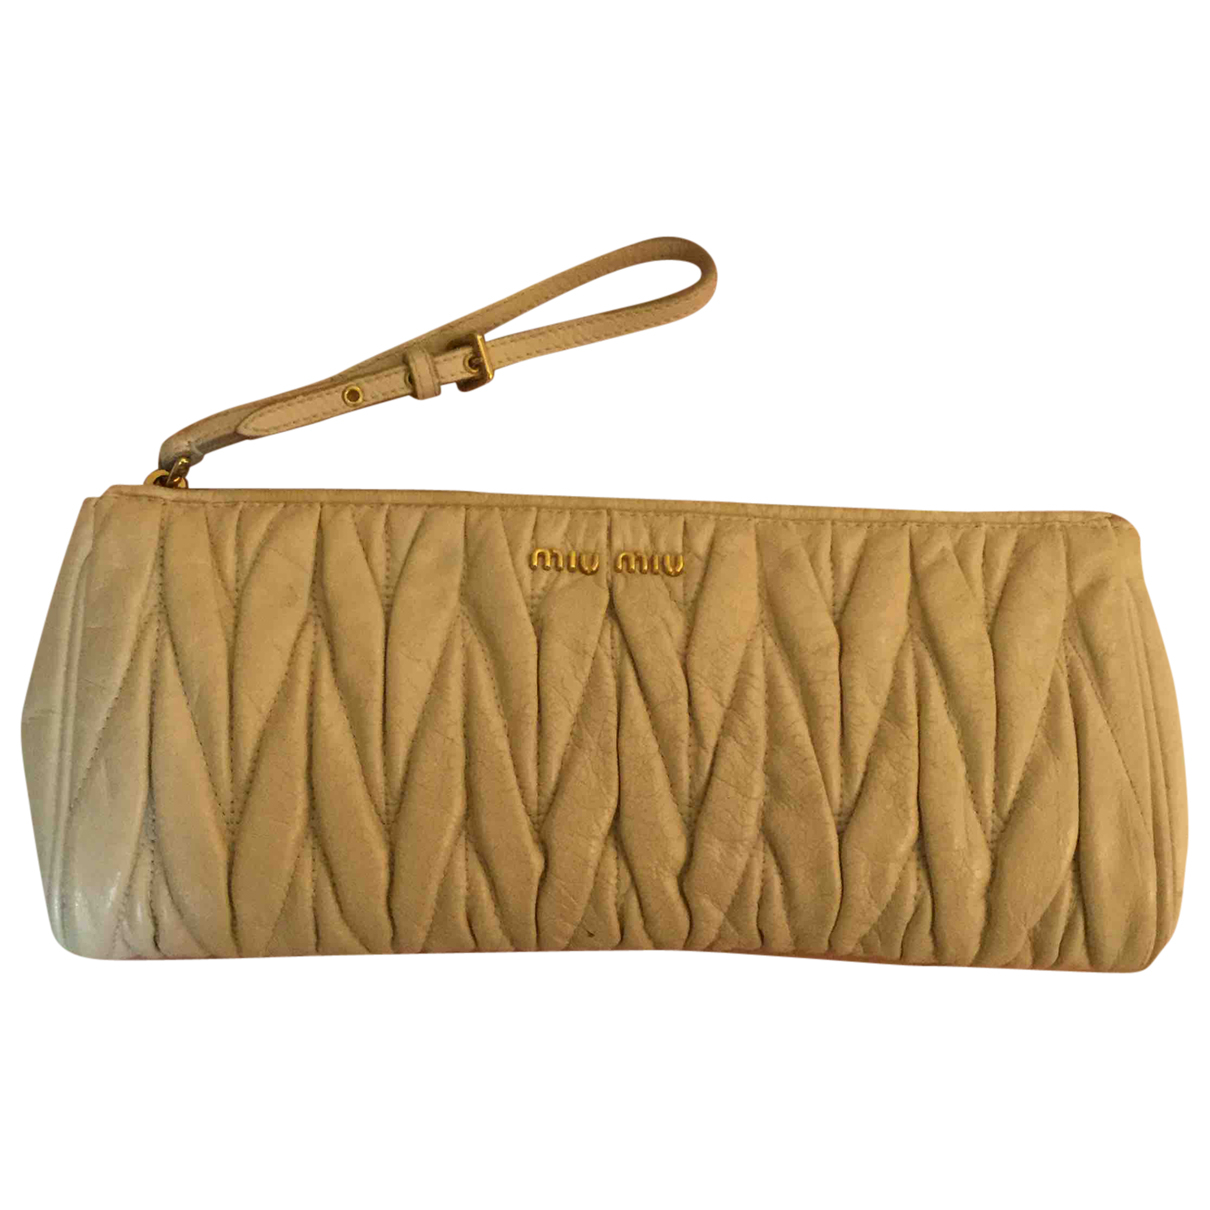 Miu Miu Matelassé Leather Clutch bag for Women N